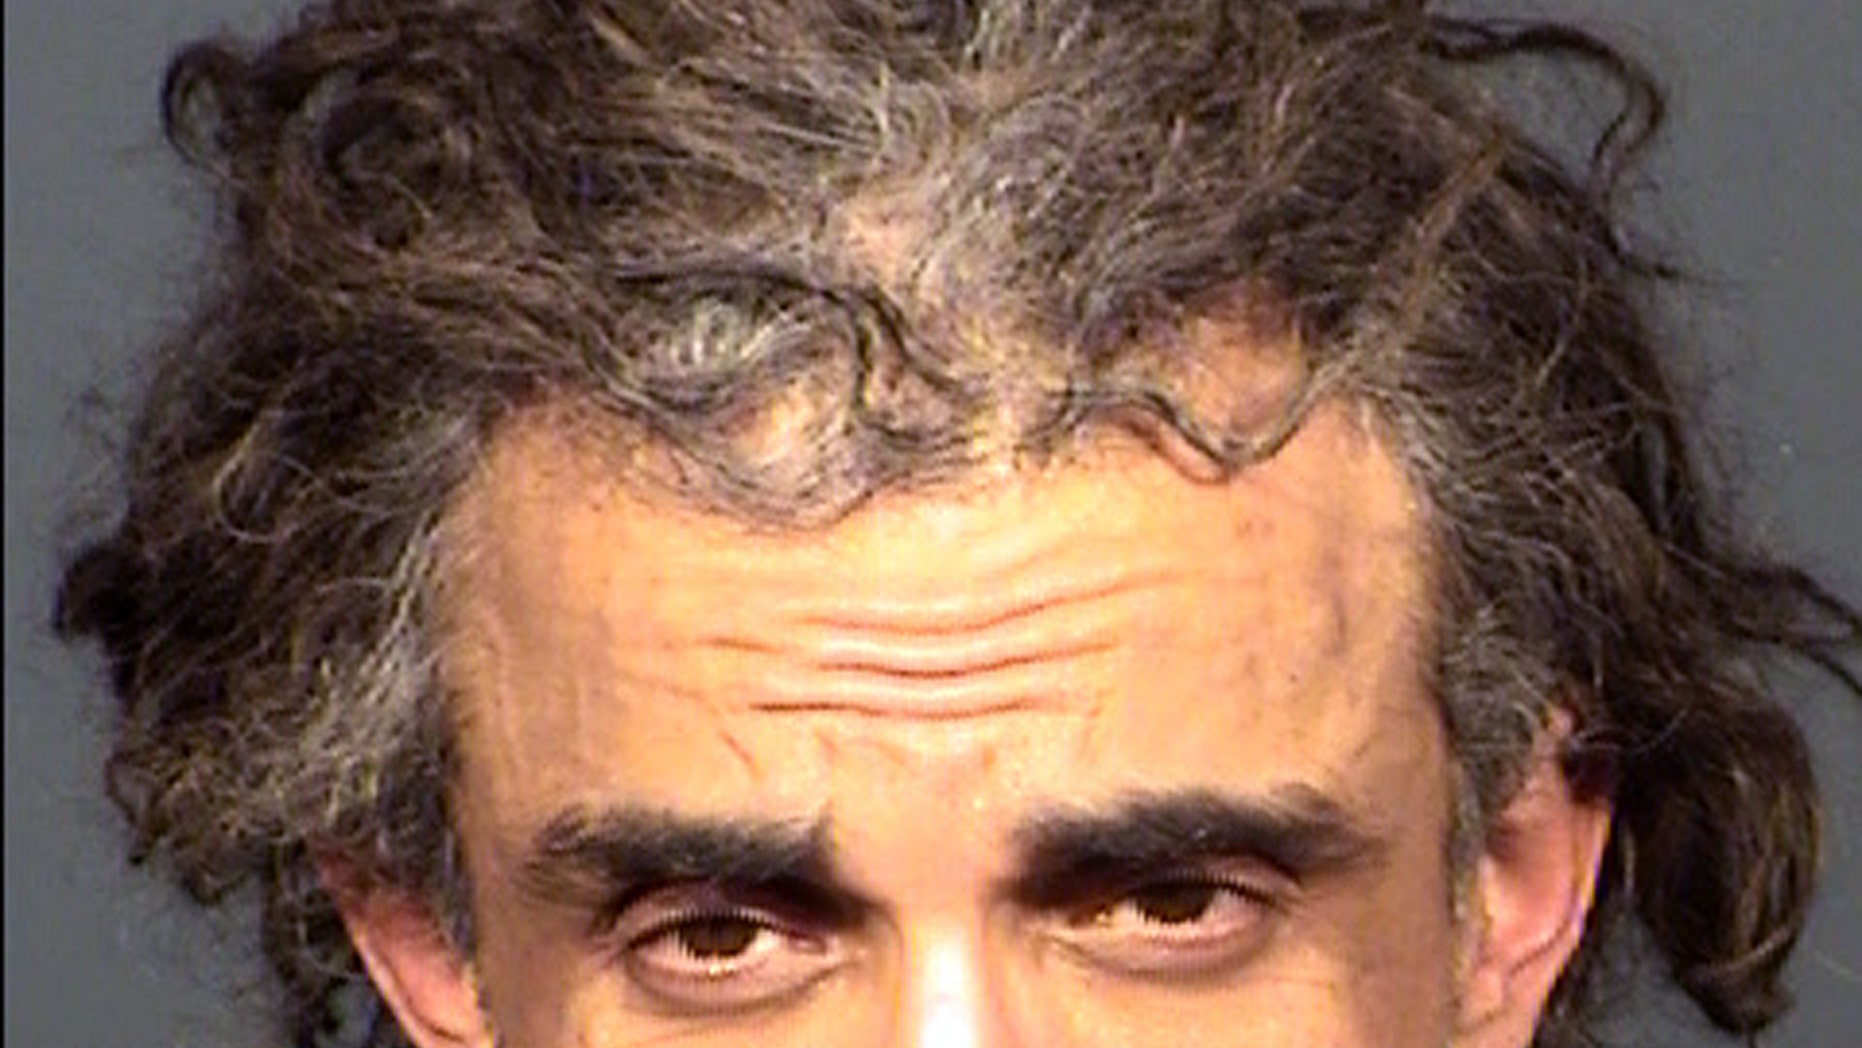 This undated Clark County Detention Center photo provided by the Las Vegas Metropolitan Police Department shows Afshin Bahrampour. Las Vegas police say Bahrampour is being held pending a court appearance on suspicion of starting two fires on Monday, May 8, 2017, at a Jewish synagogue in Las Vegas. (Las Vegas Metropolitan Police Department via AP)